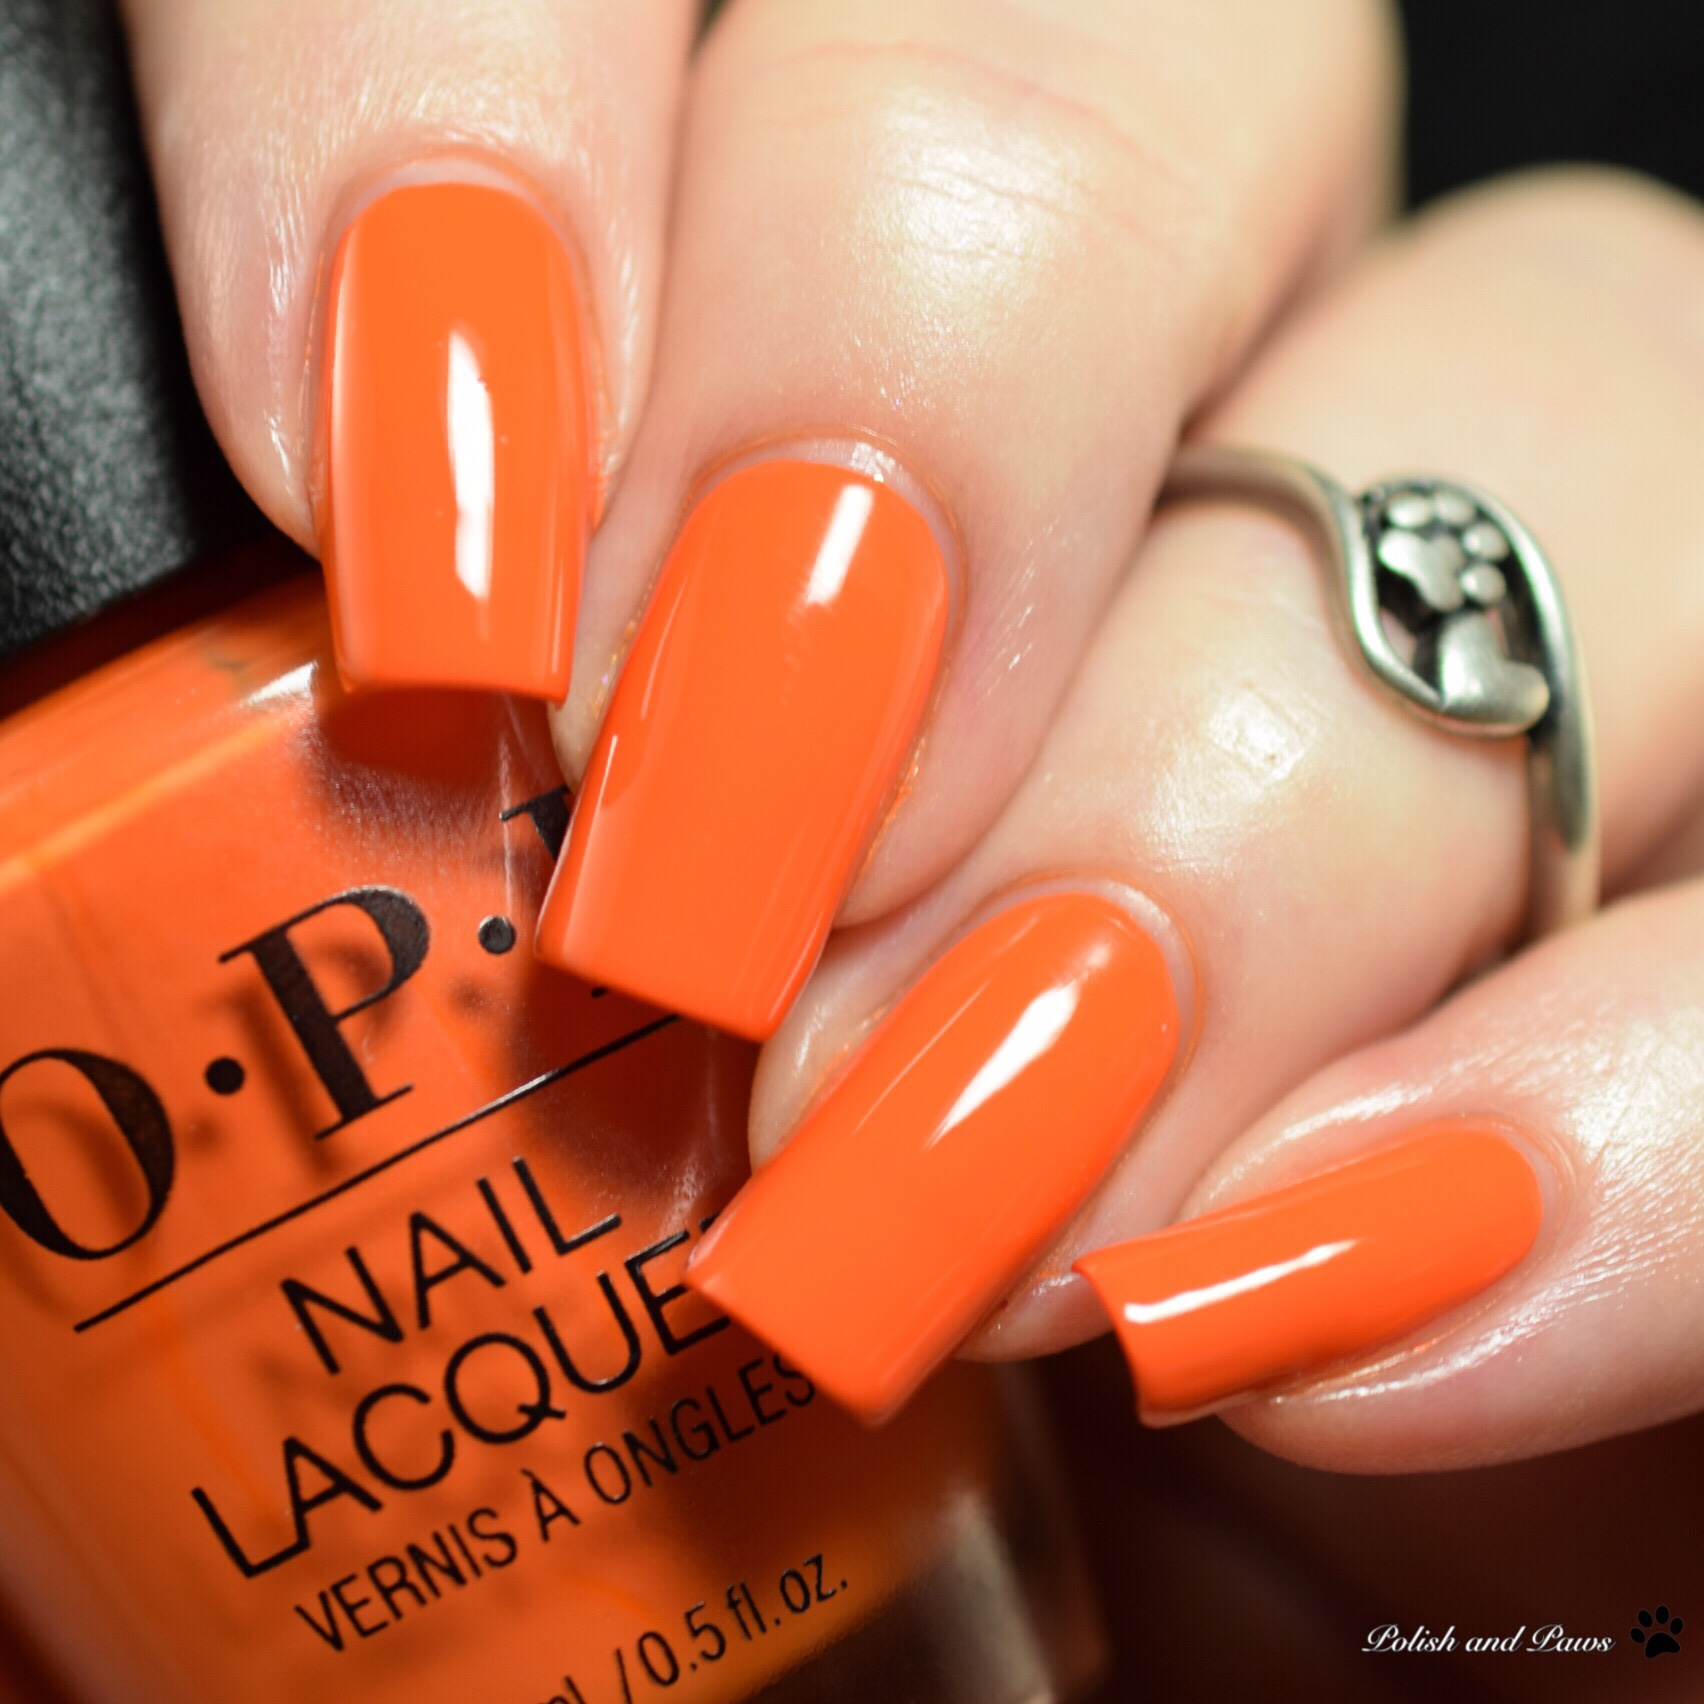 OPI Summer Lovin' Having a Blast